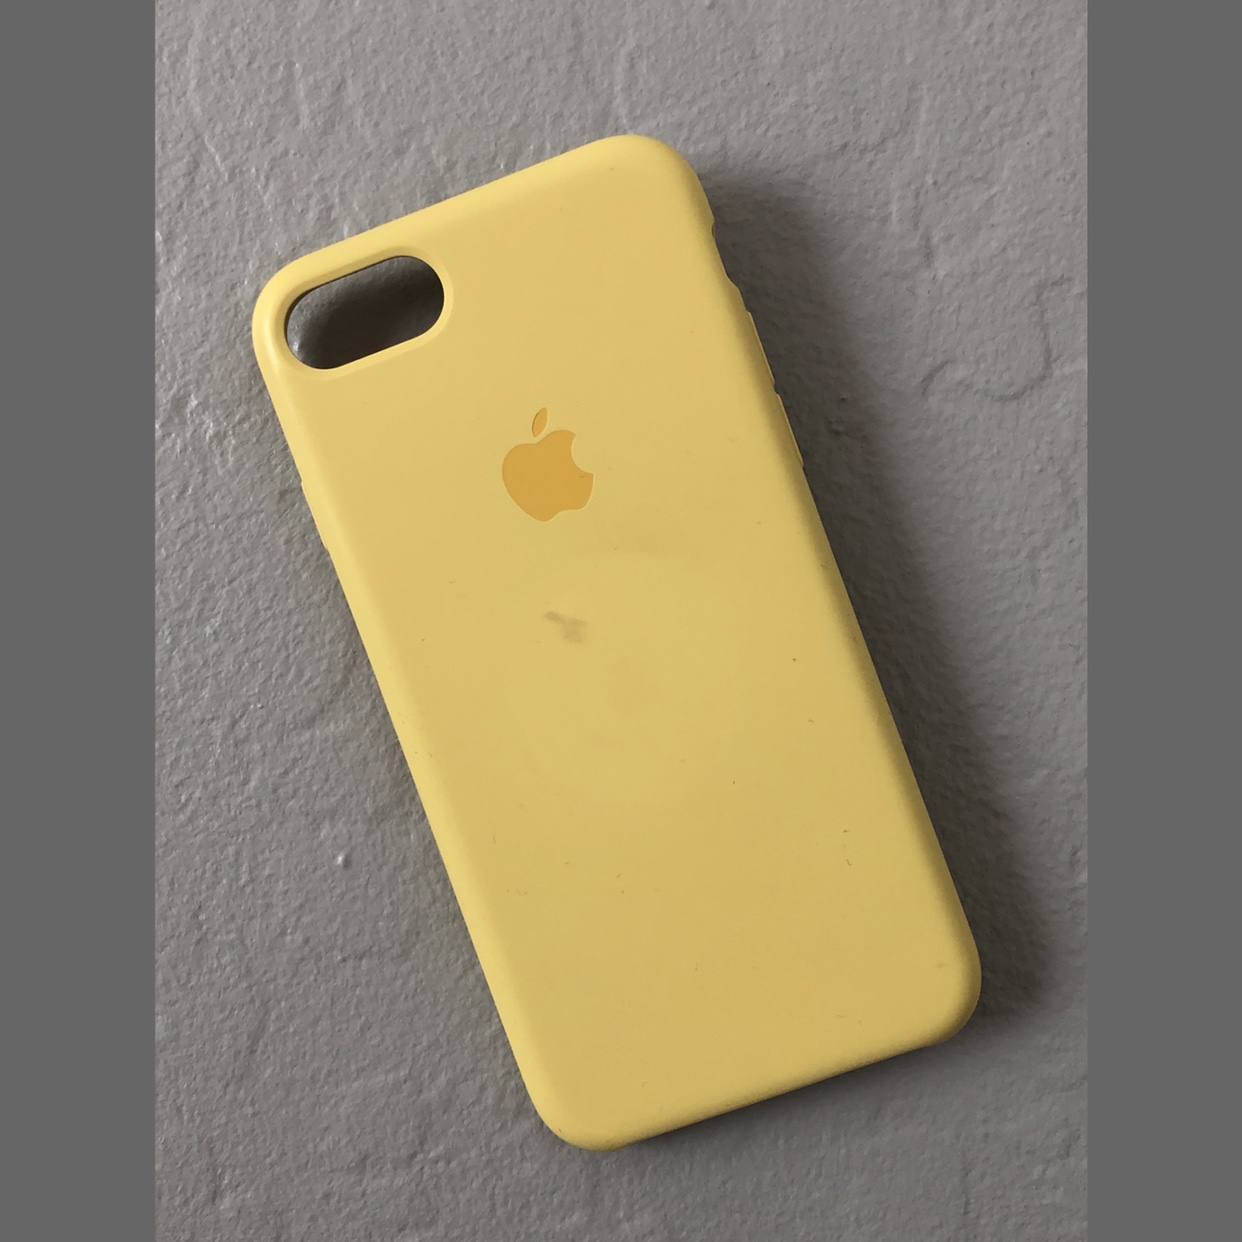 new concept c38f2 88a44 iPhone 7/8 Banana Yellow Silicone Case🍌 The... - Depop